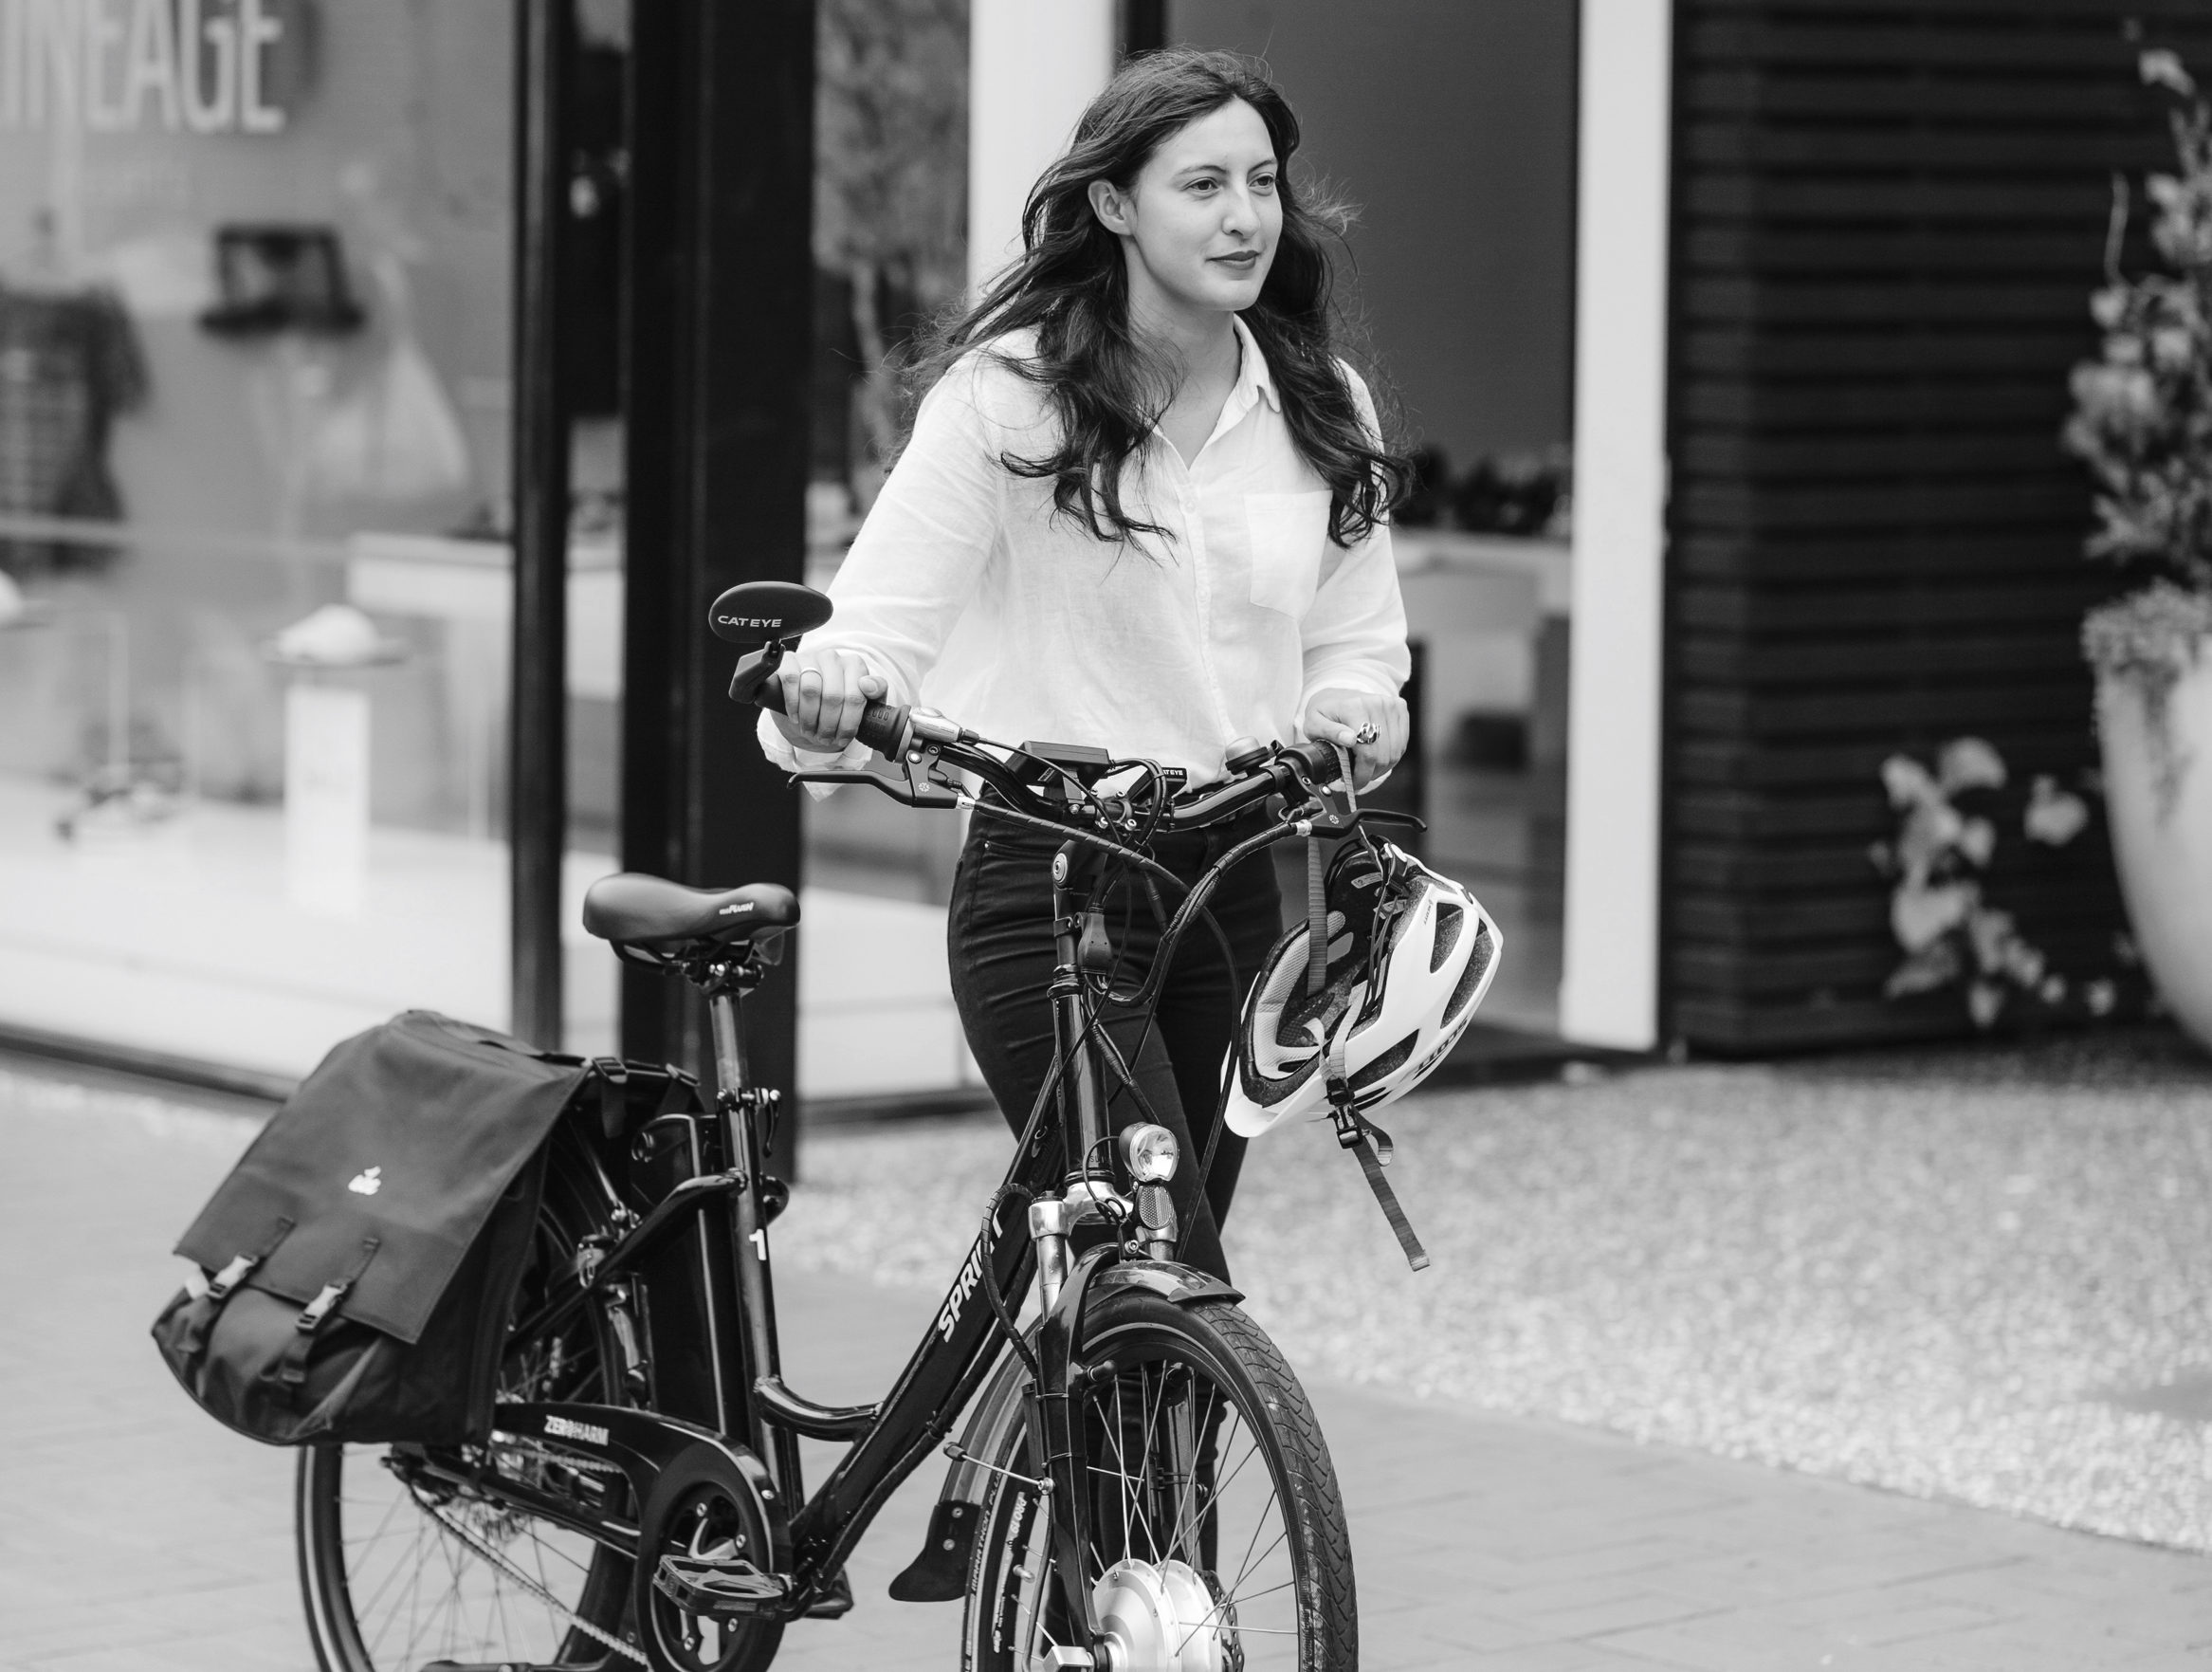 E-bike happiness